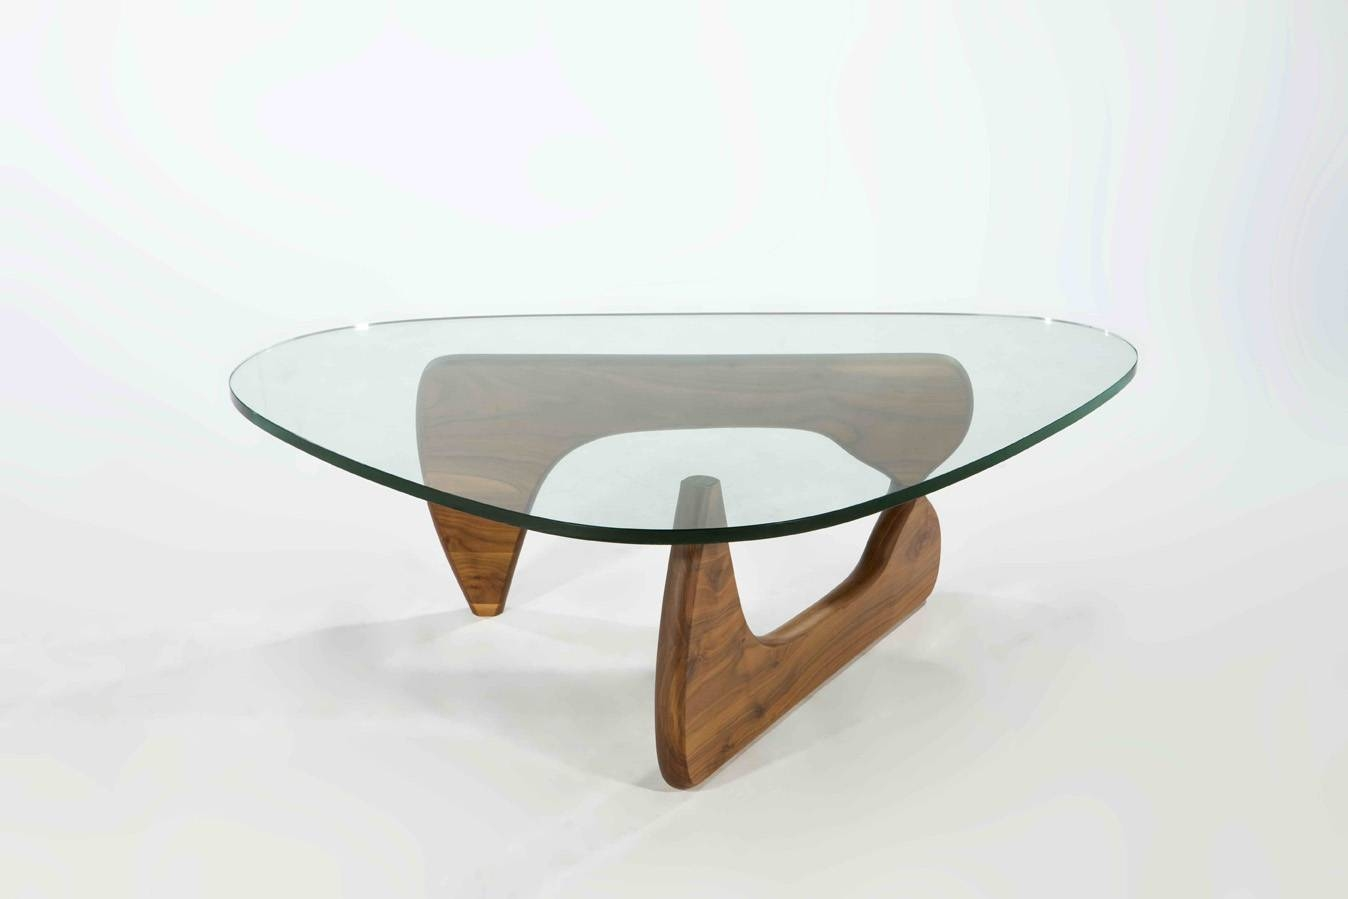 Contemporary Coffee Tables Slow : Contemporary Coffee Tables throughout Contemporary Coffee Tables (Image 7 of 15)